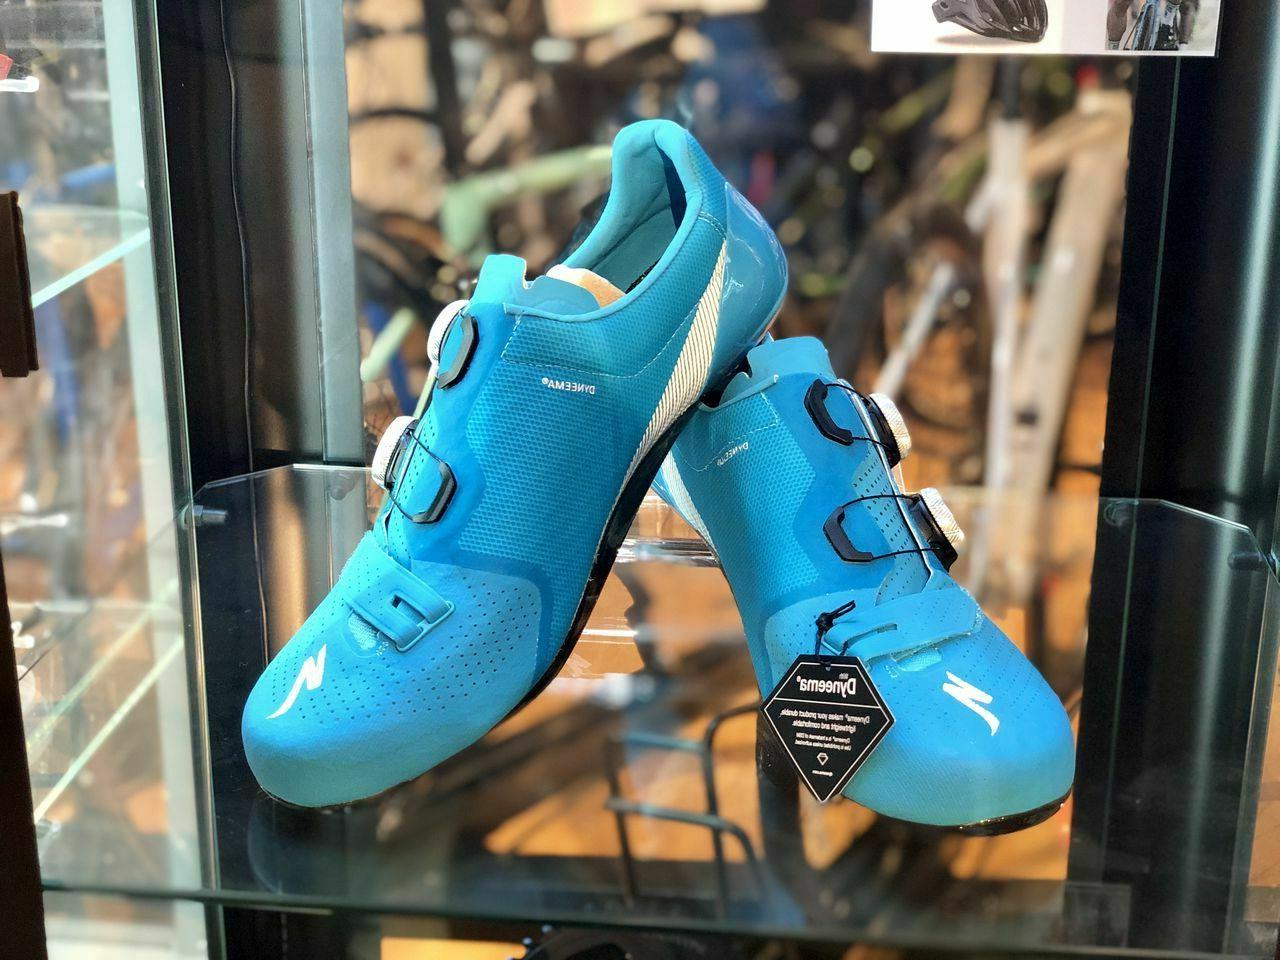 new s works 7 road cycling shoes